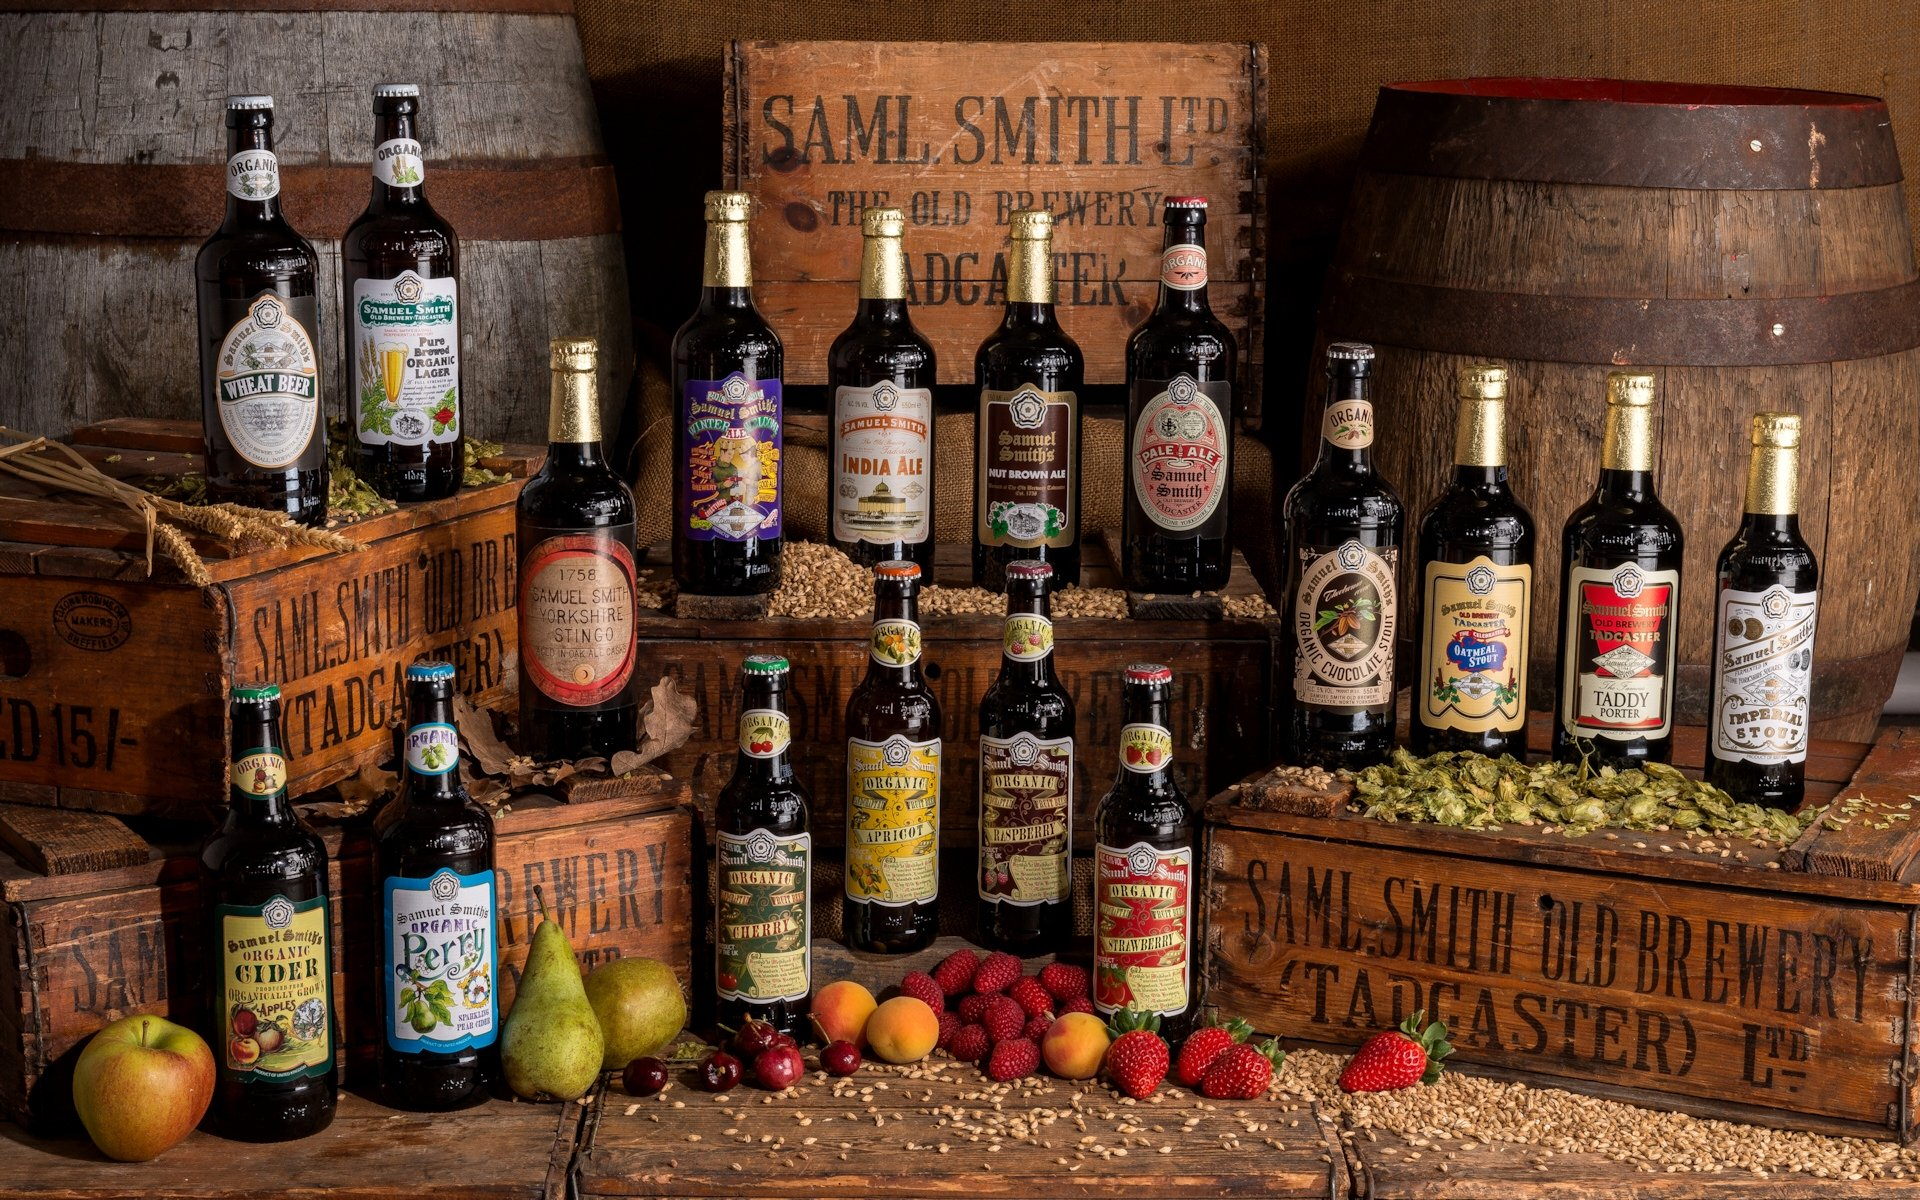 Samuel Smith; English IPA